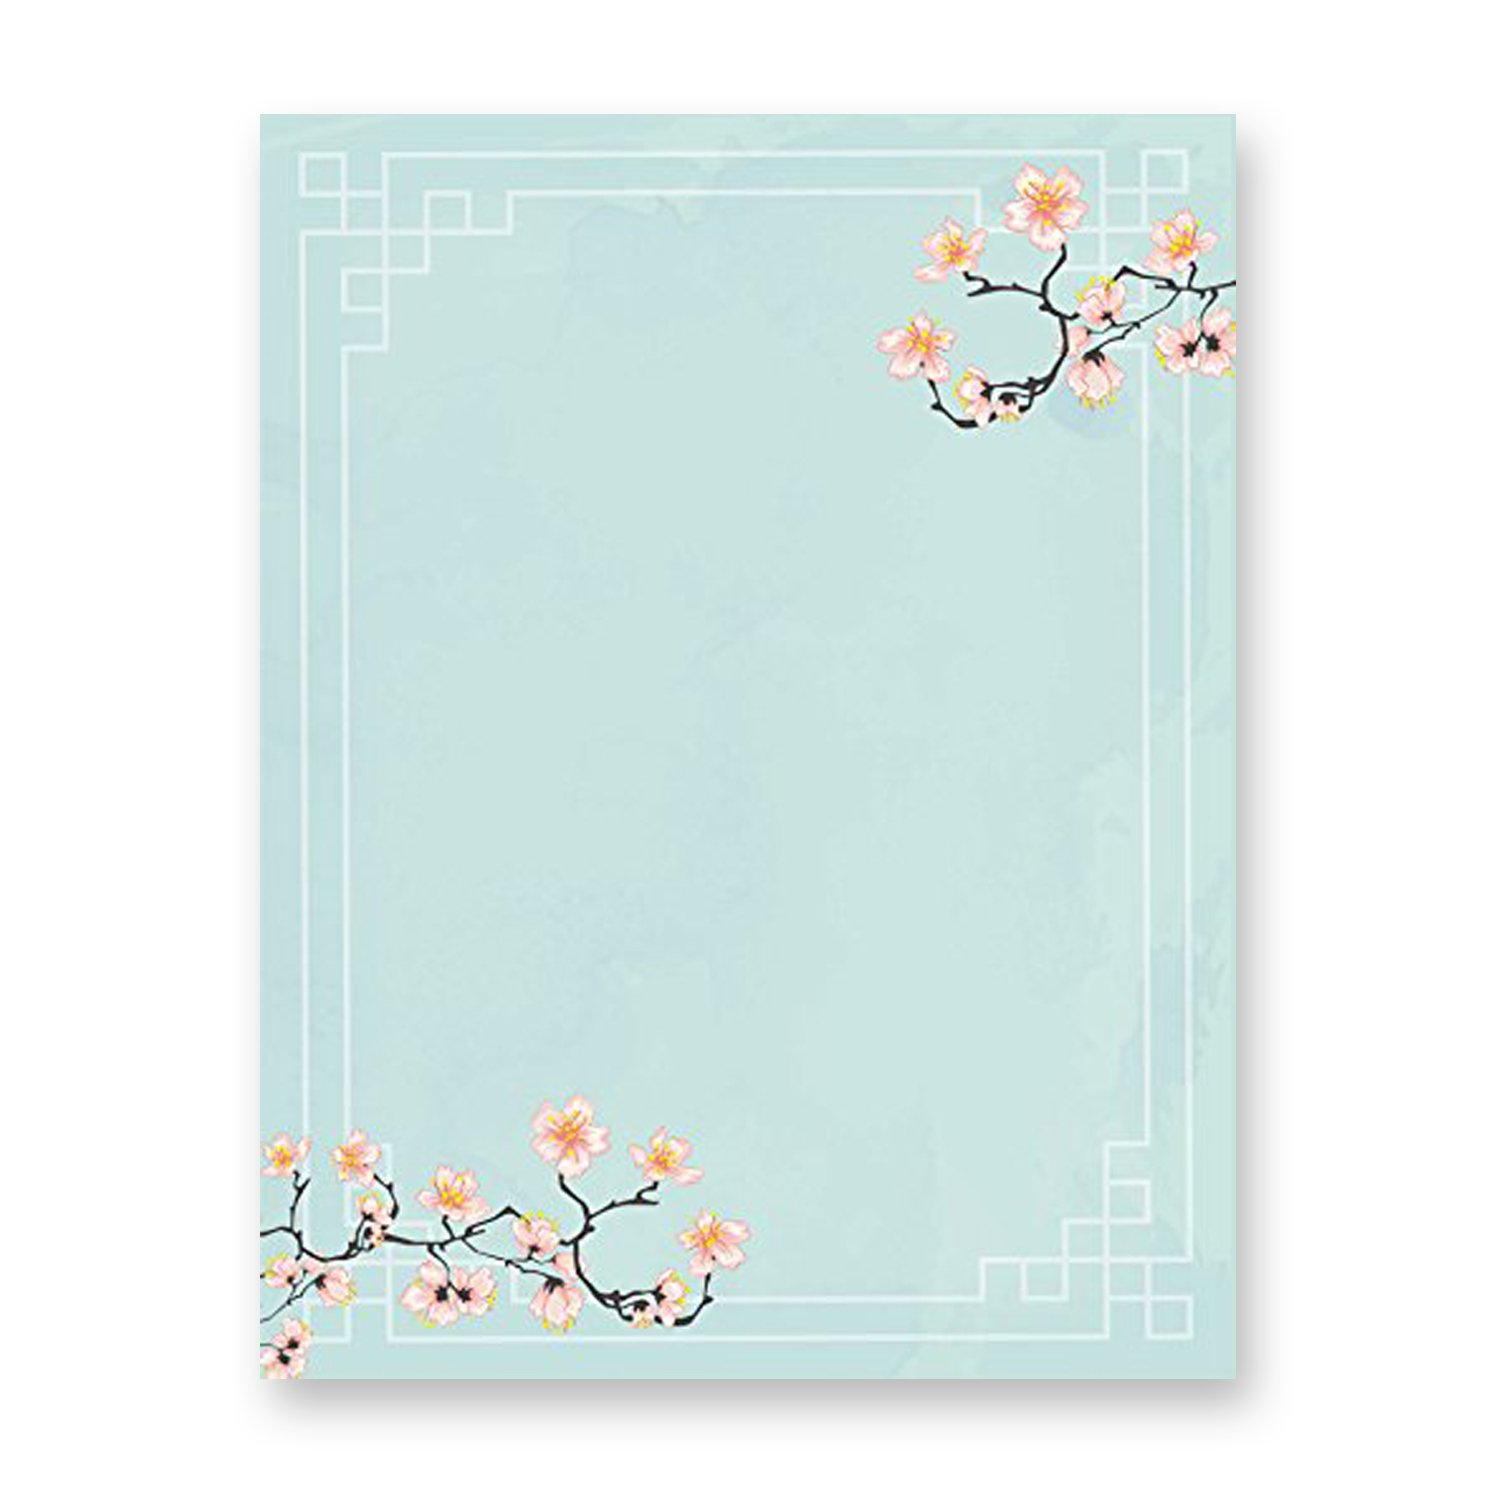 photo regarding Printable Stationeries called 100 Stationery Crafting Paper, with Lovely Floral Ideas Fantastic for Notes or Letter Crafting - Cherry Blossoms